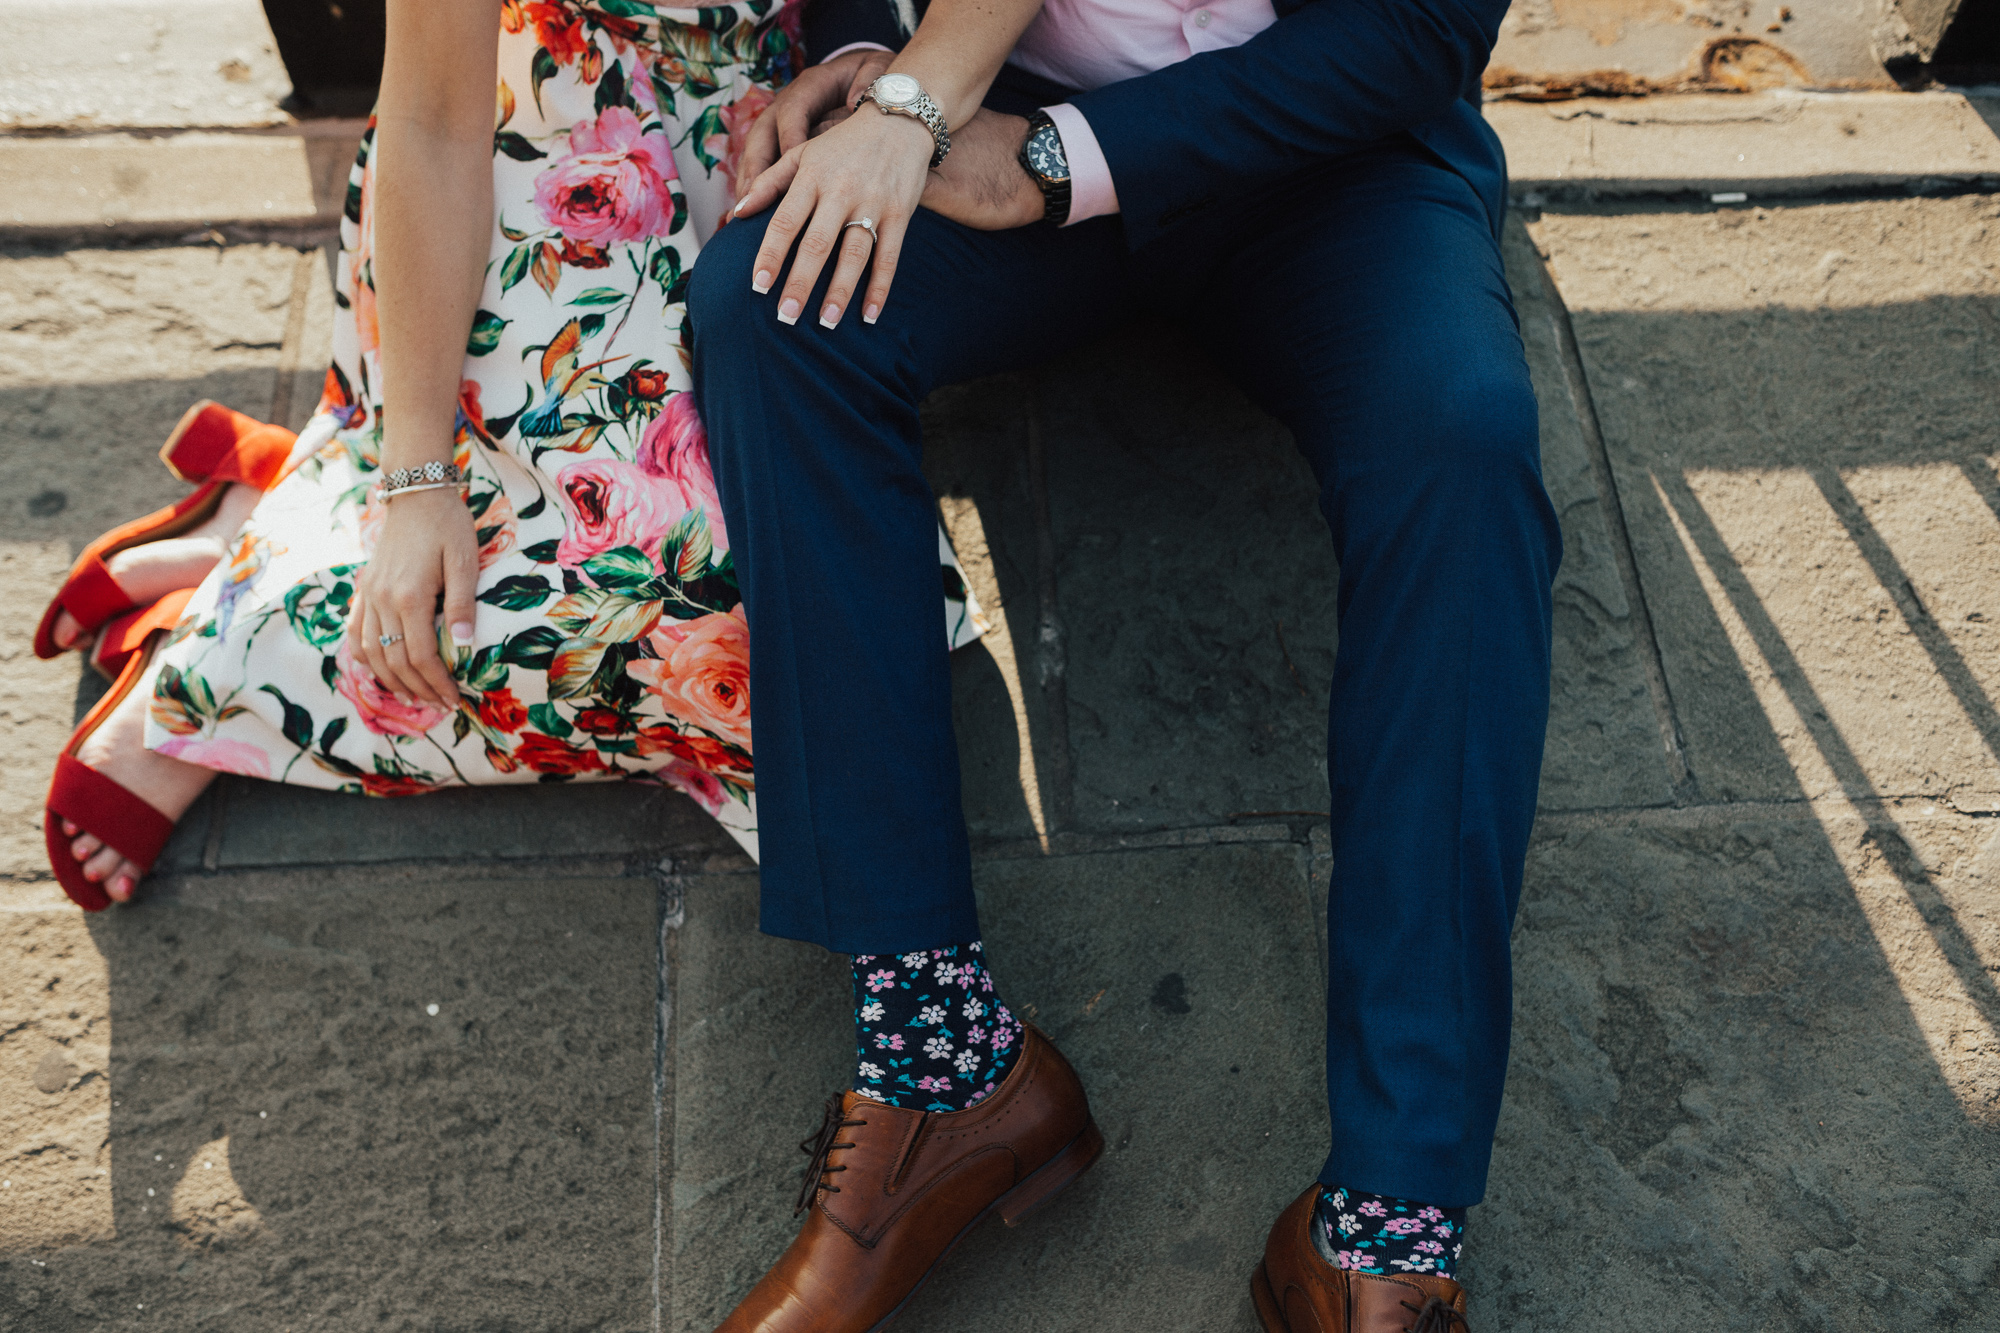 brooklyn_nyc_engagement_photography-28-of-83.jpg